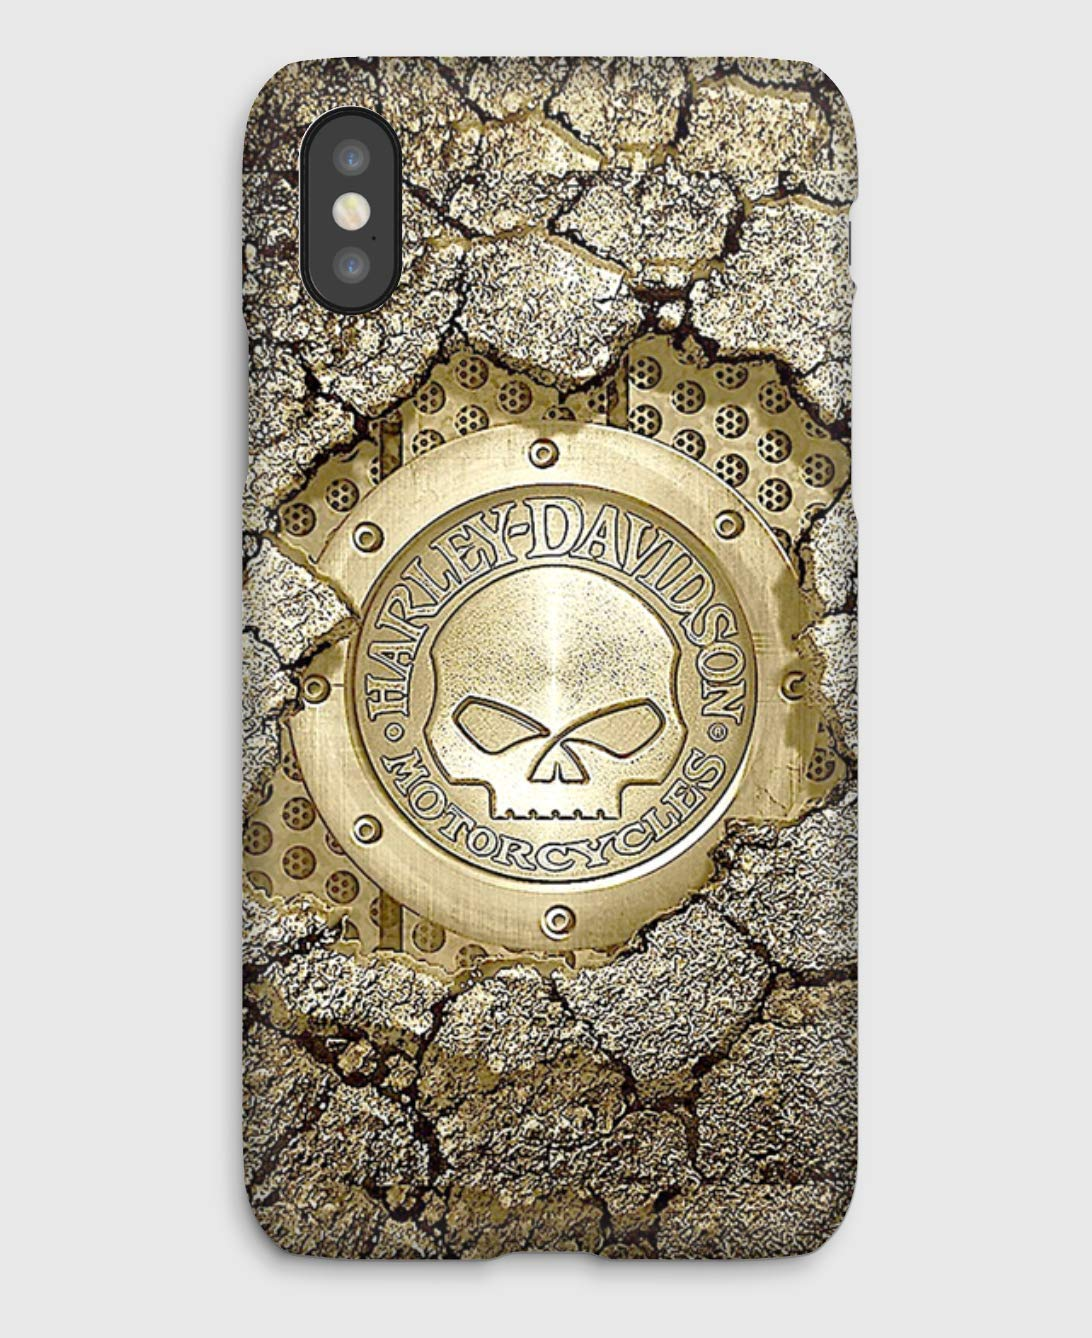 iPhone cas 4, 4S, 5, 5SE, 5S, 5C, 6, 6S, 6S + 6+, 7, 7+, 8, 8+, iPhone X, Harley Davidson in a wall